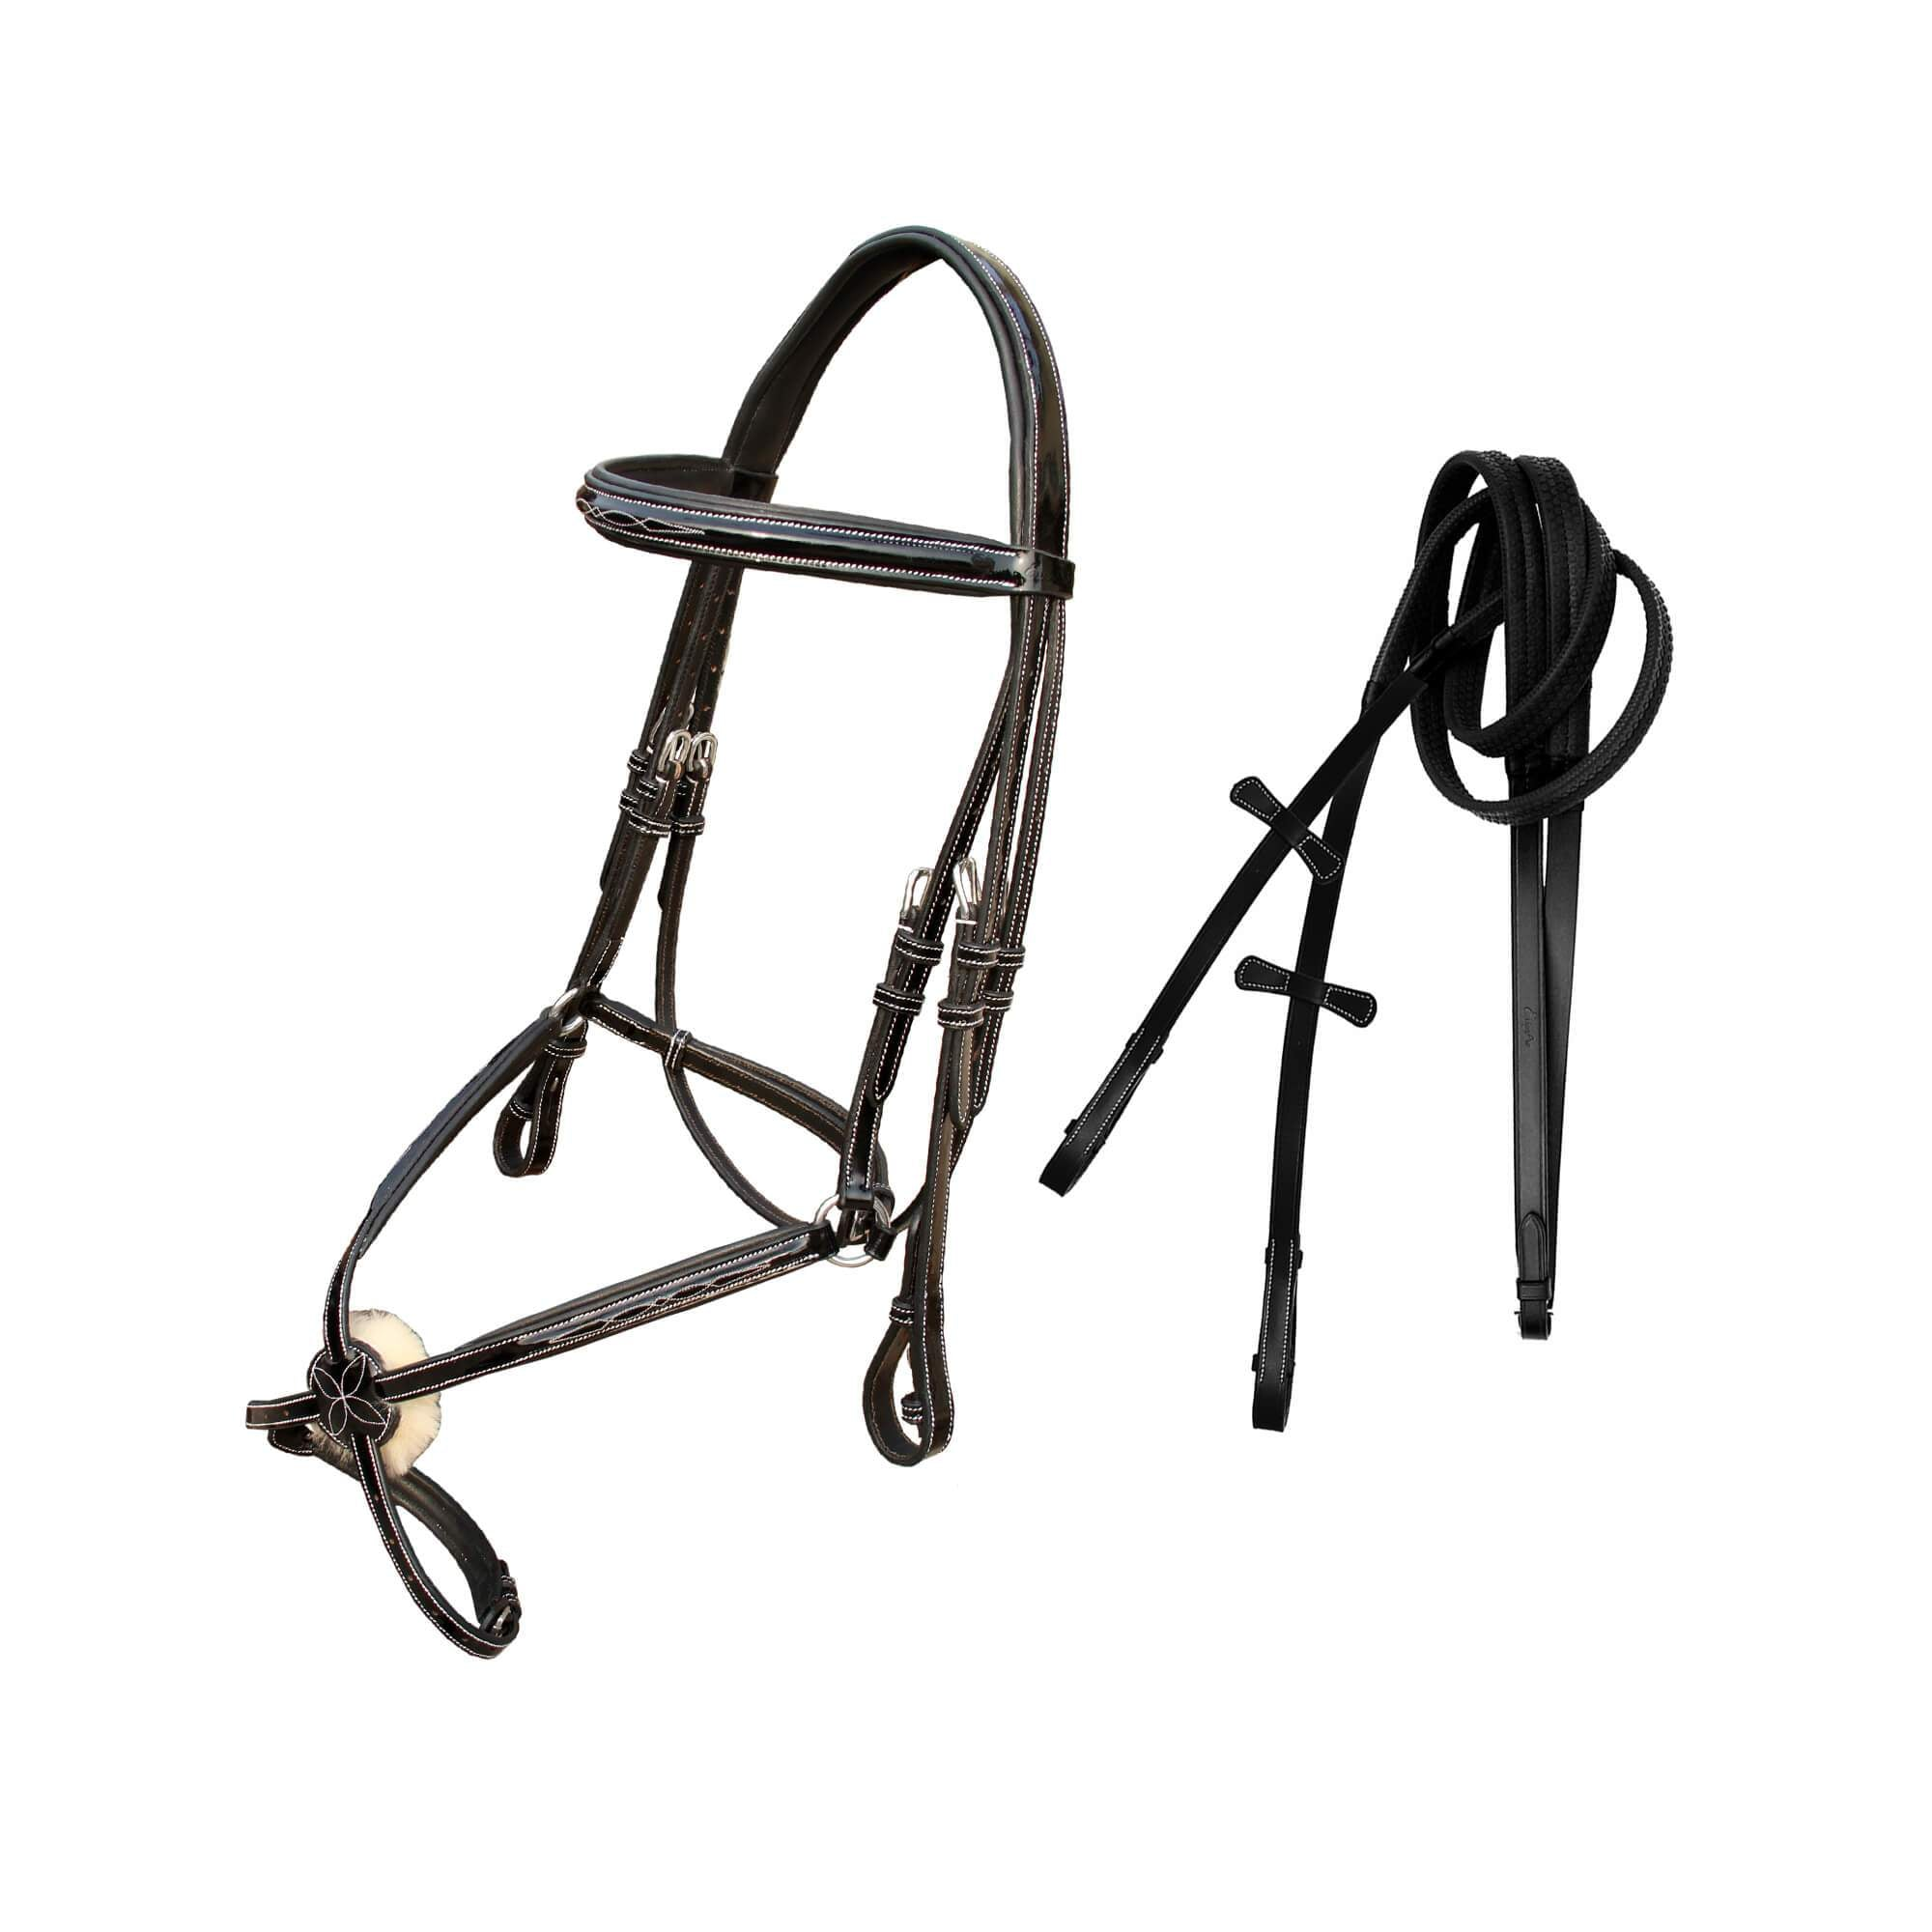 ExionPro Designer Fancy Patent Glossy Leather Figure 8 Bridle with Reins-Bridles & Reins